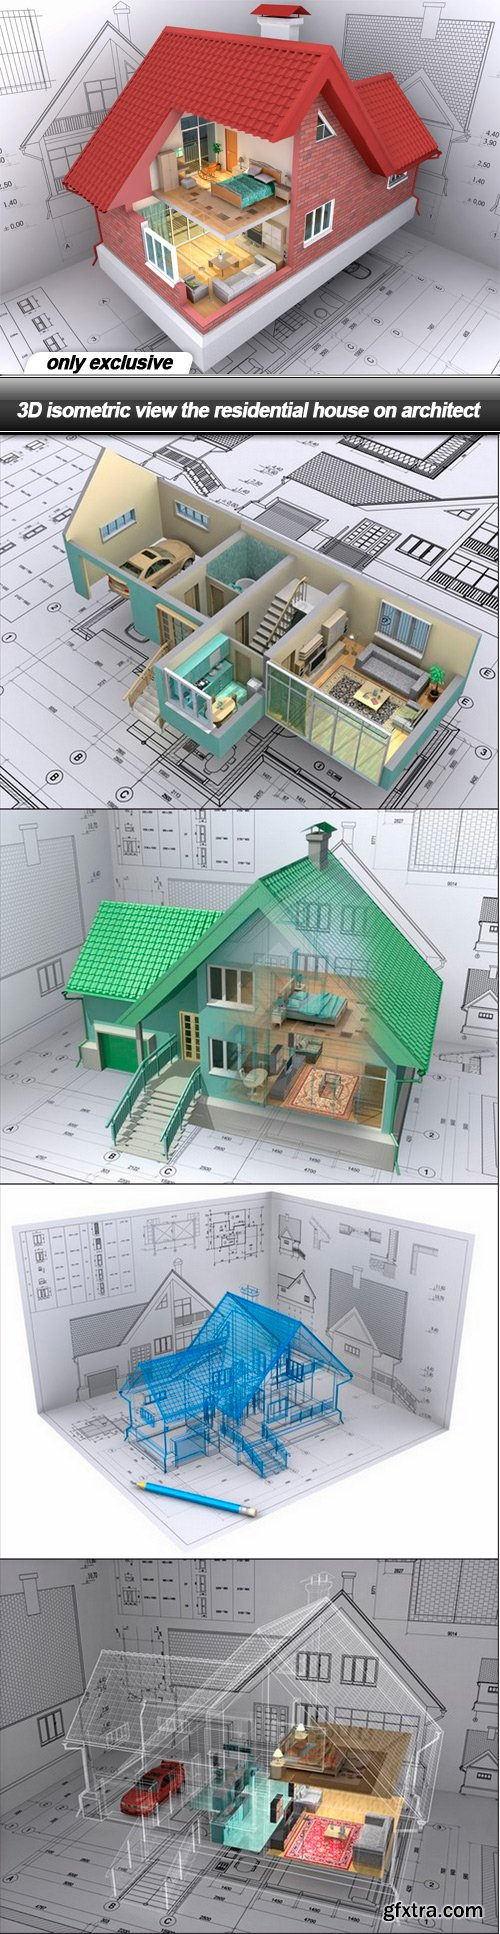 3D isometric view the residential house on architect - 5 UHQ JPEG